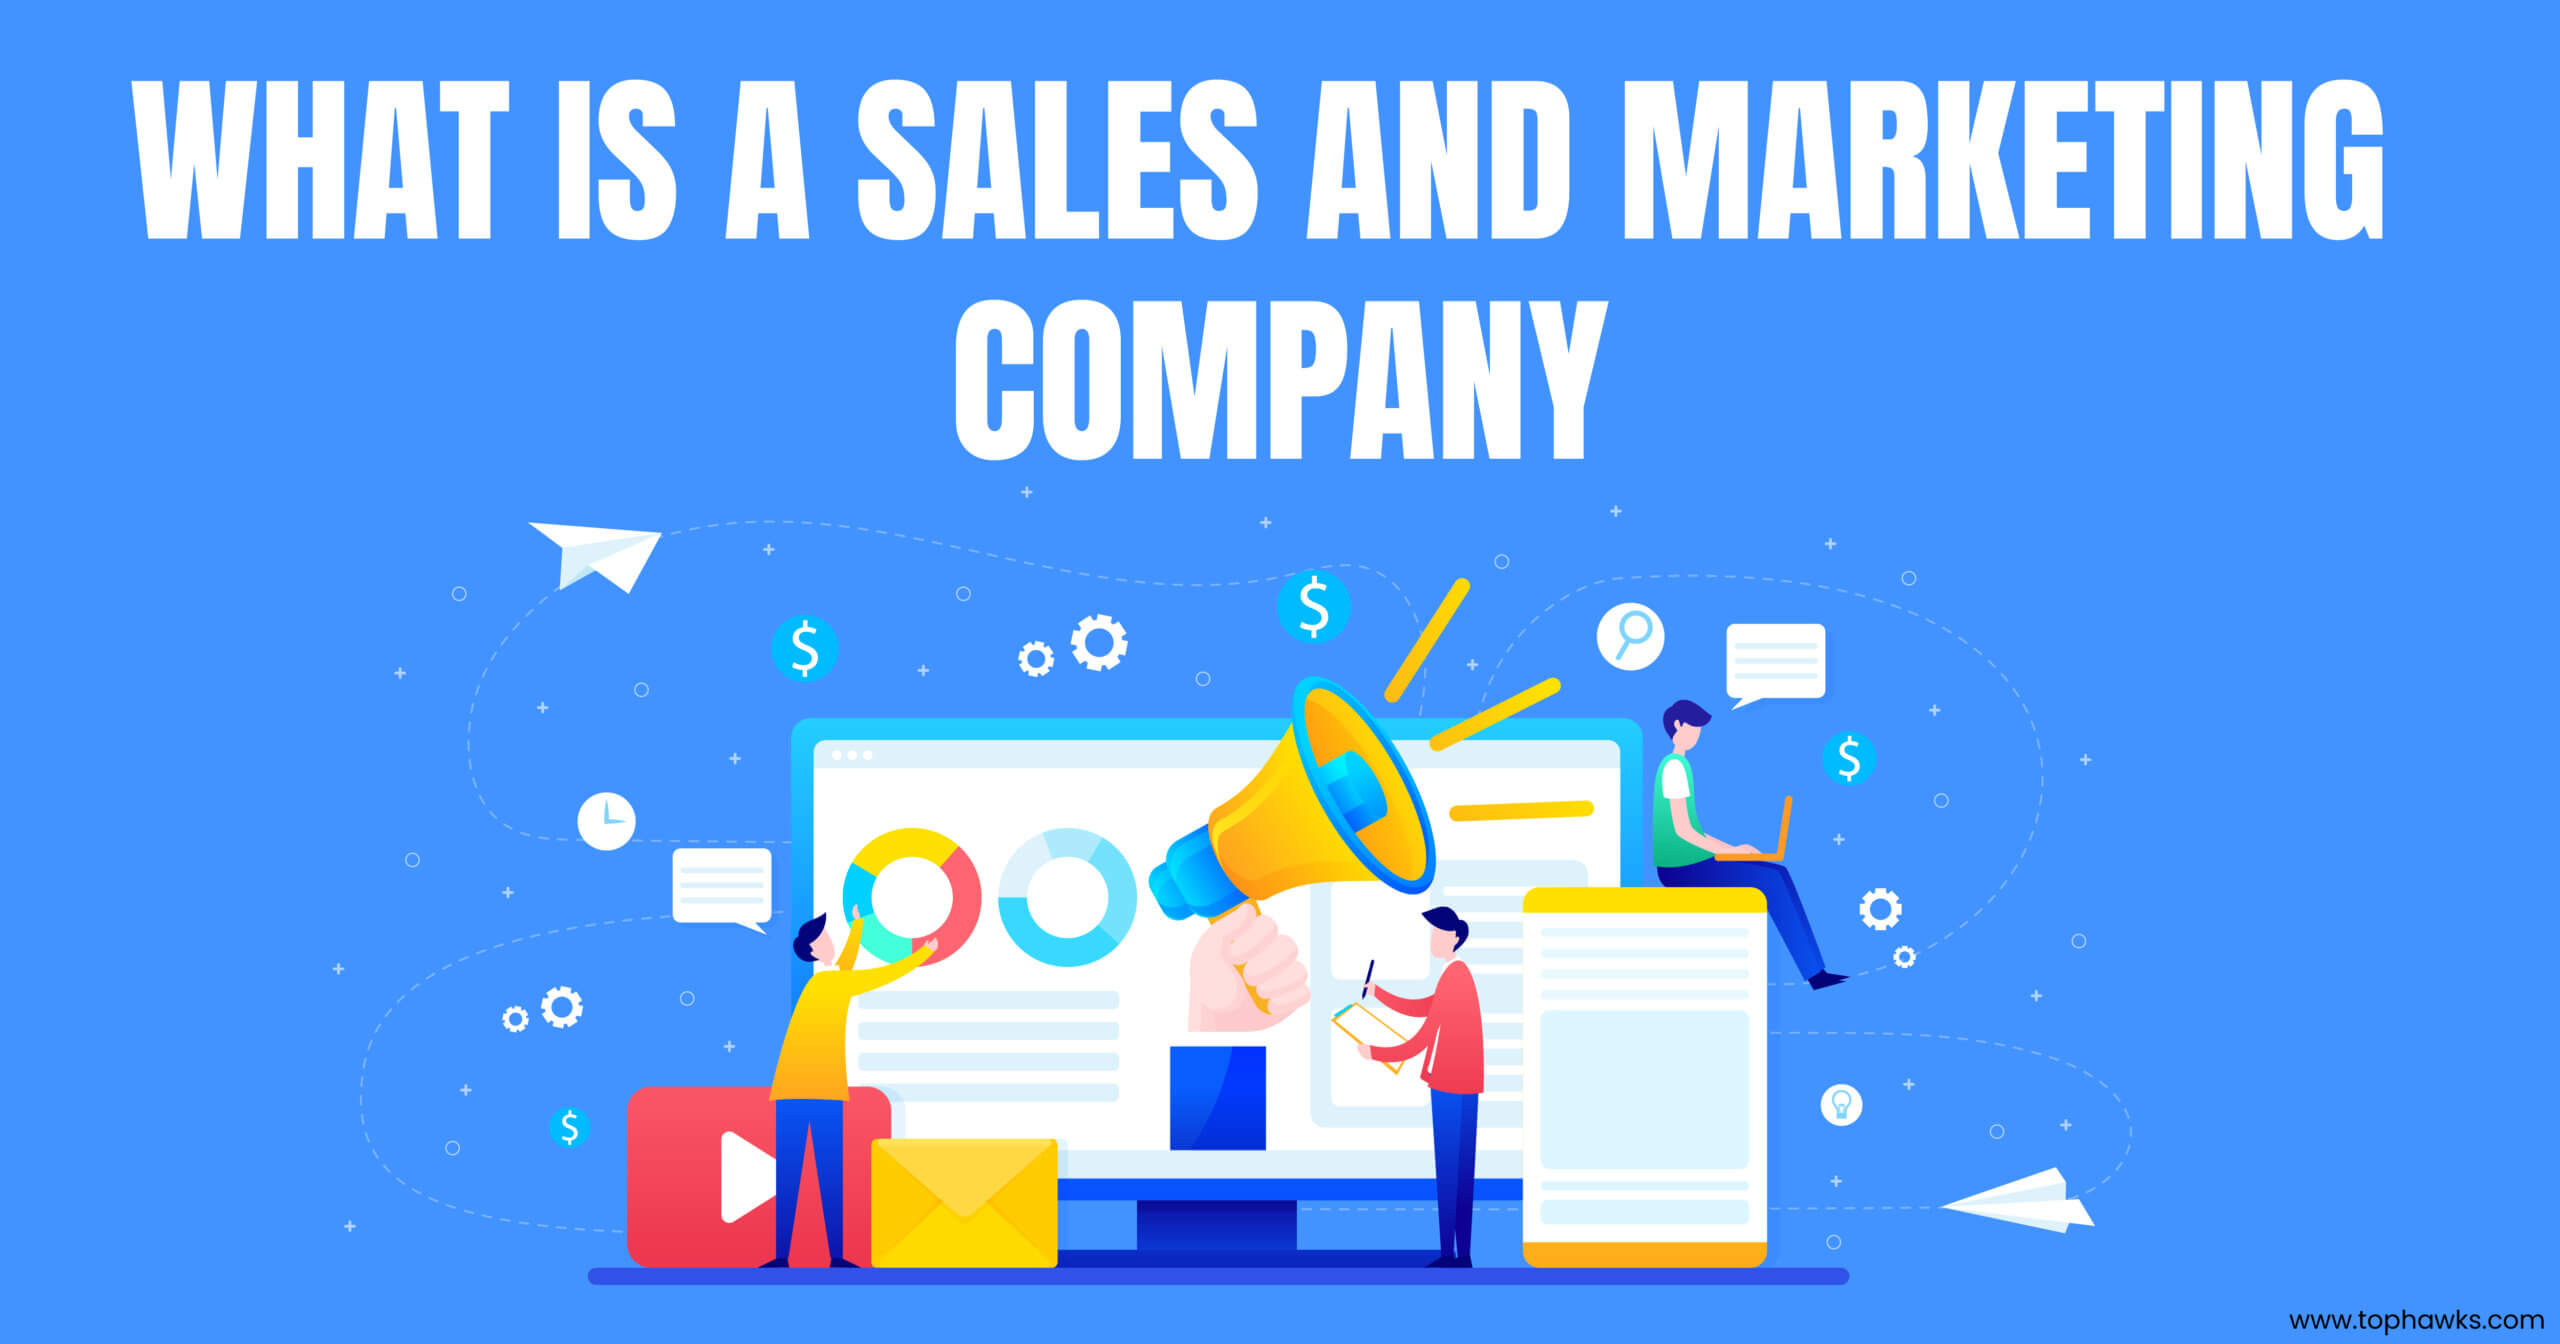 What is a Sales and Marketing Company?